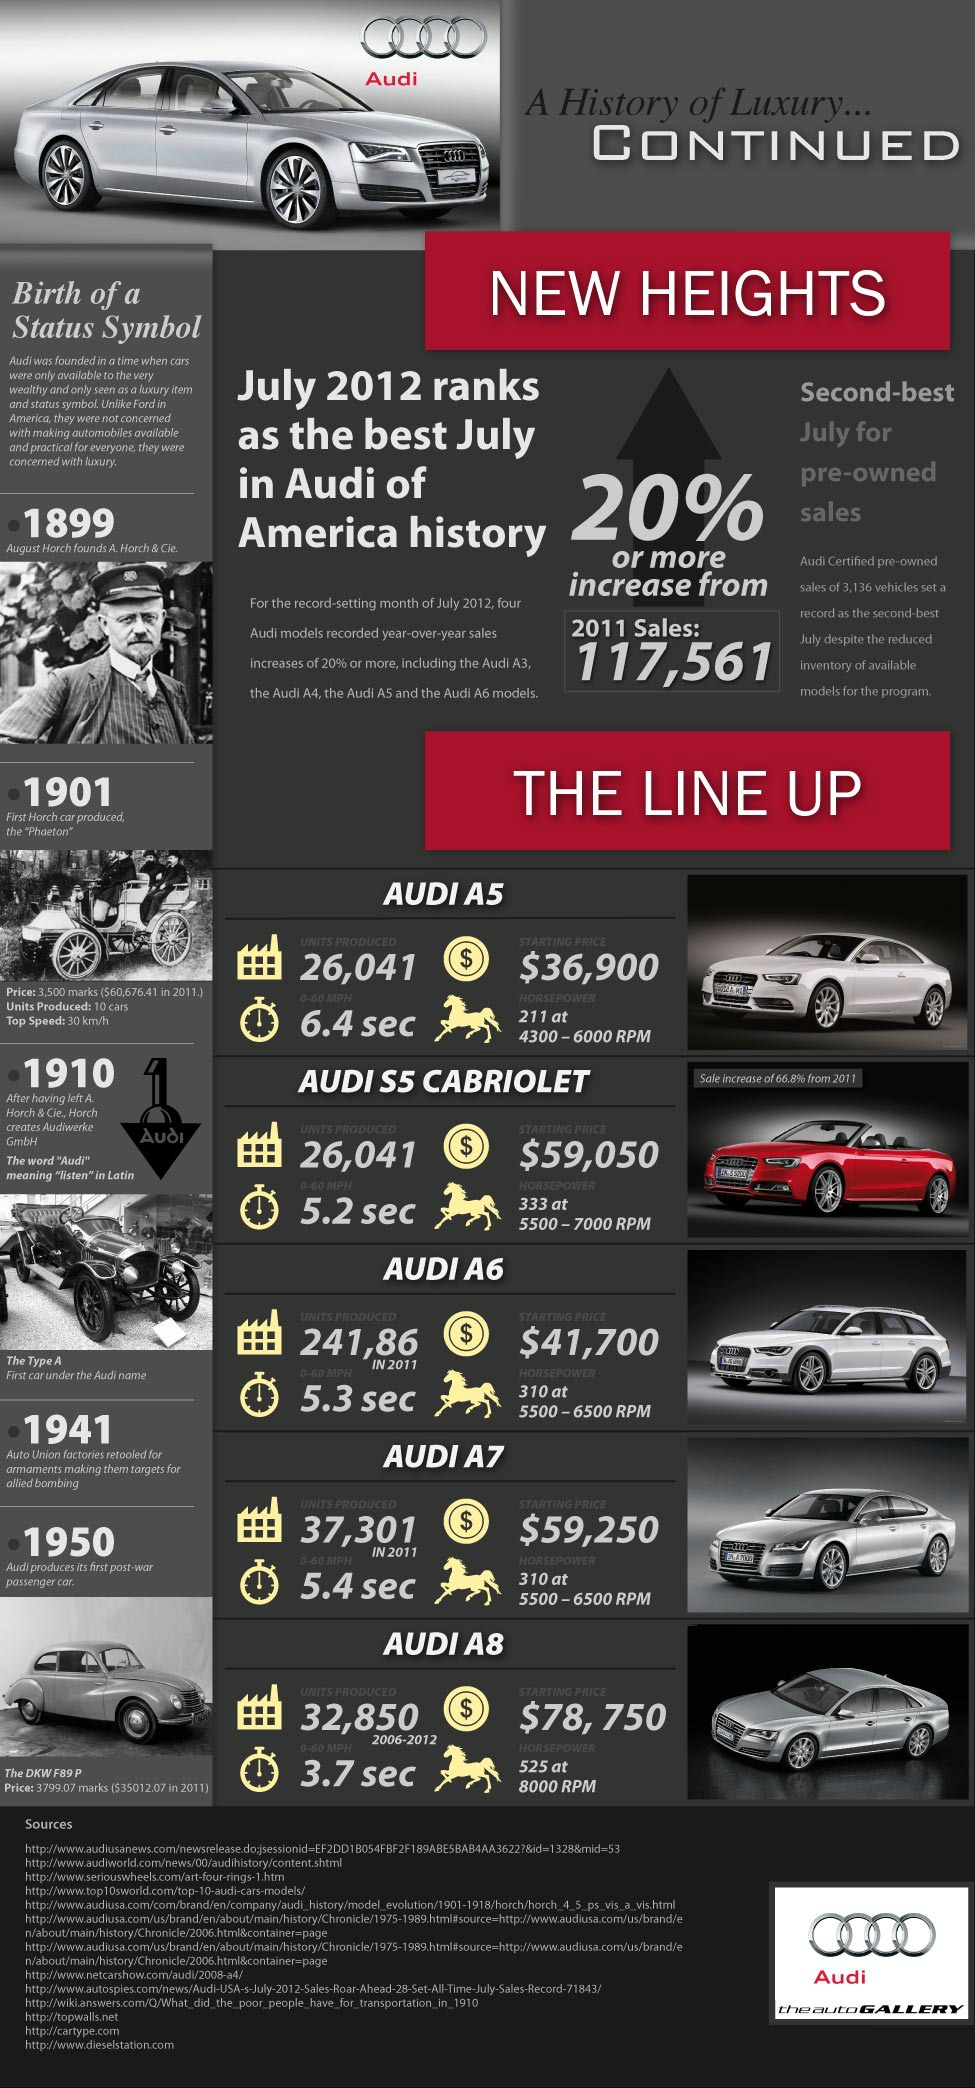 A History of Luxury Continued